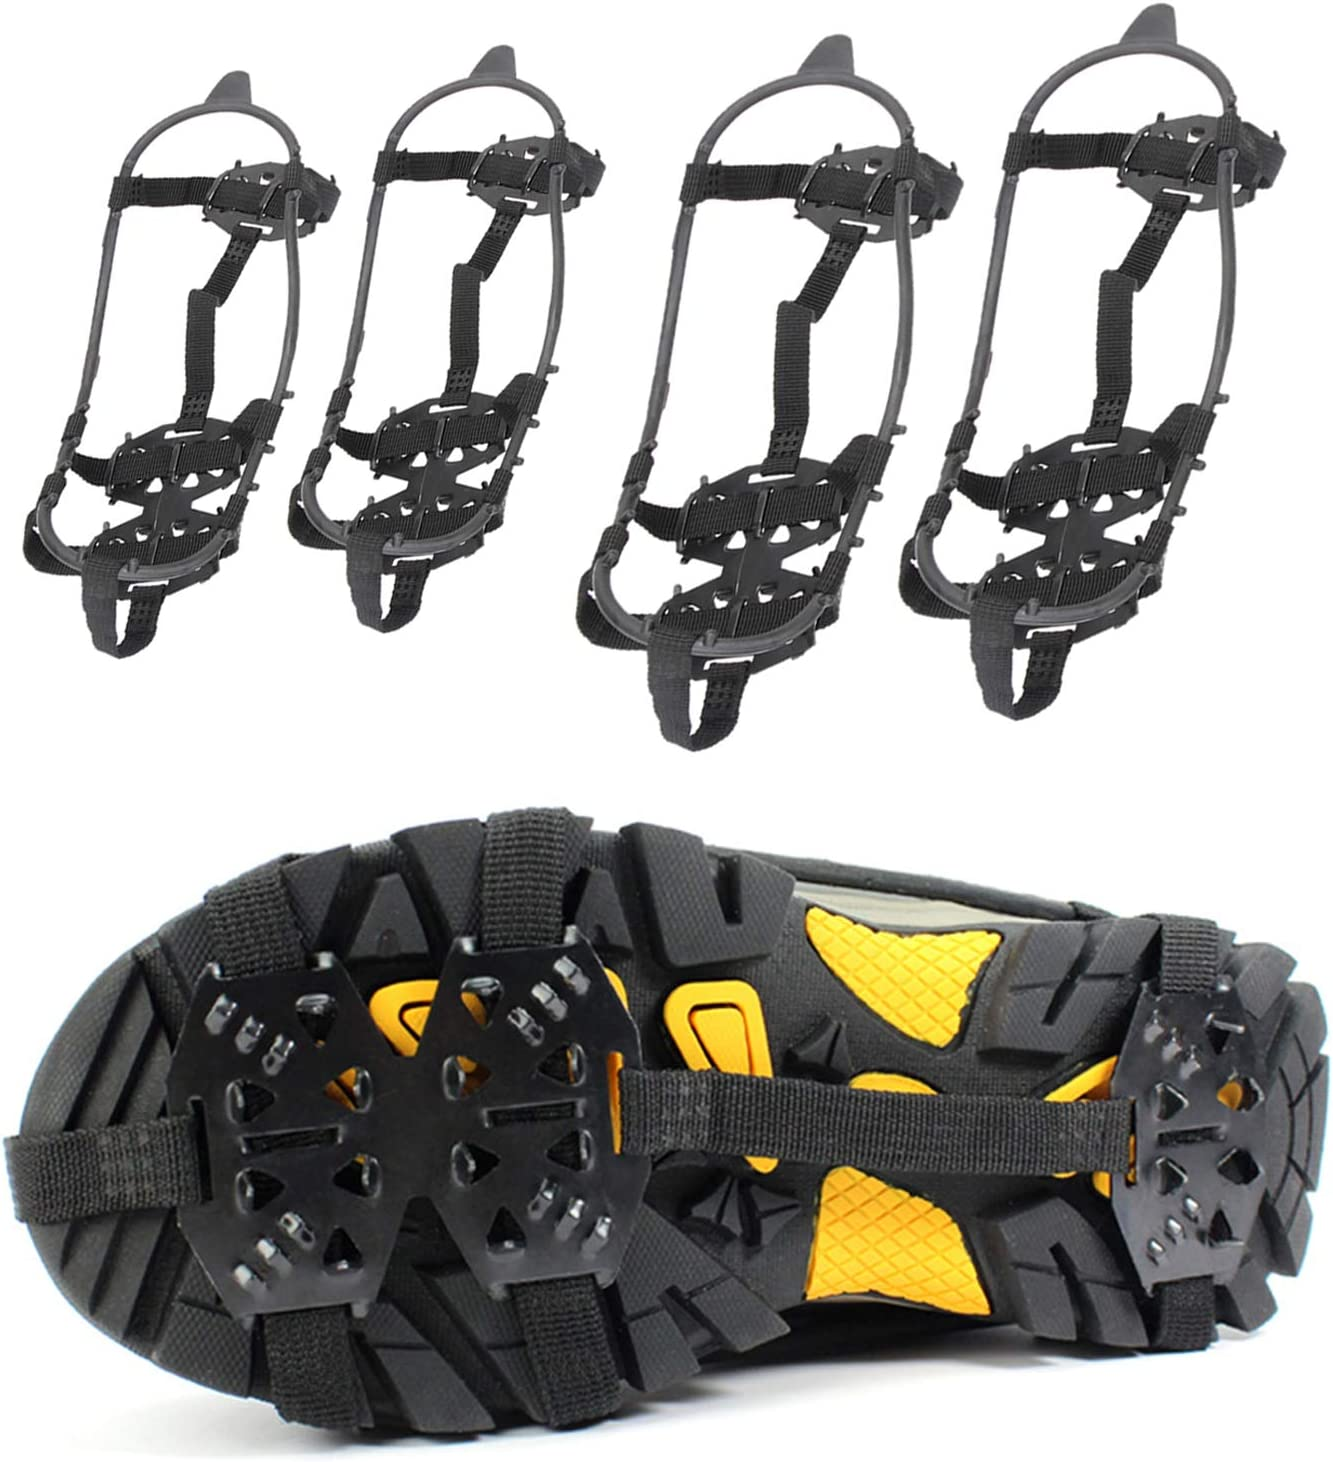 5 Teeth Anti Slip Ice Climbing Shoes Spike Cleats Outdoor Climbing Crampons